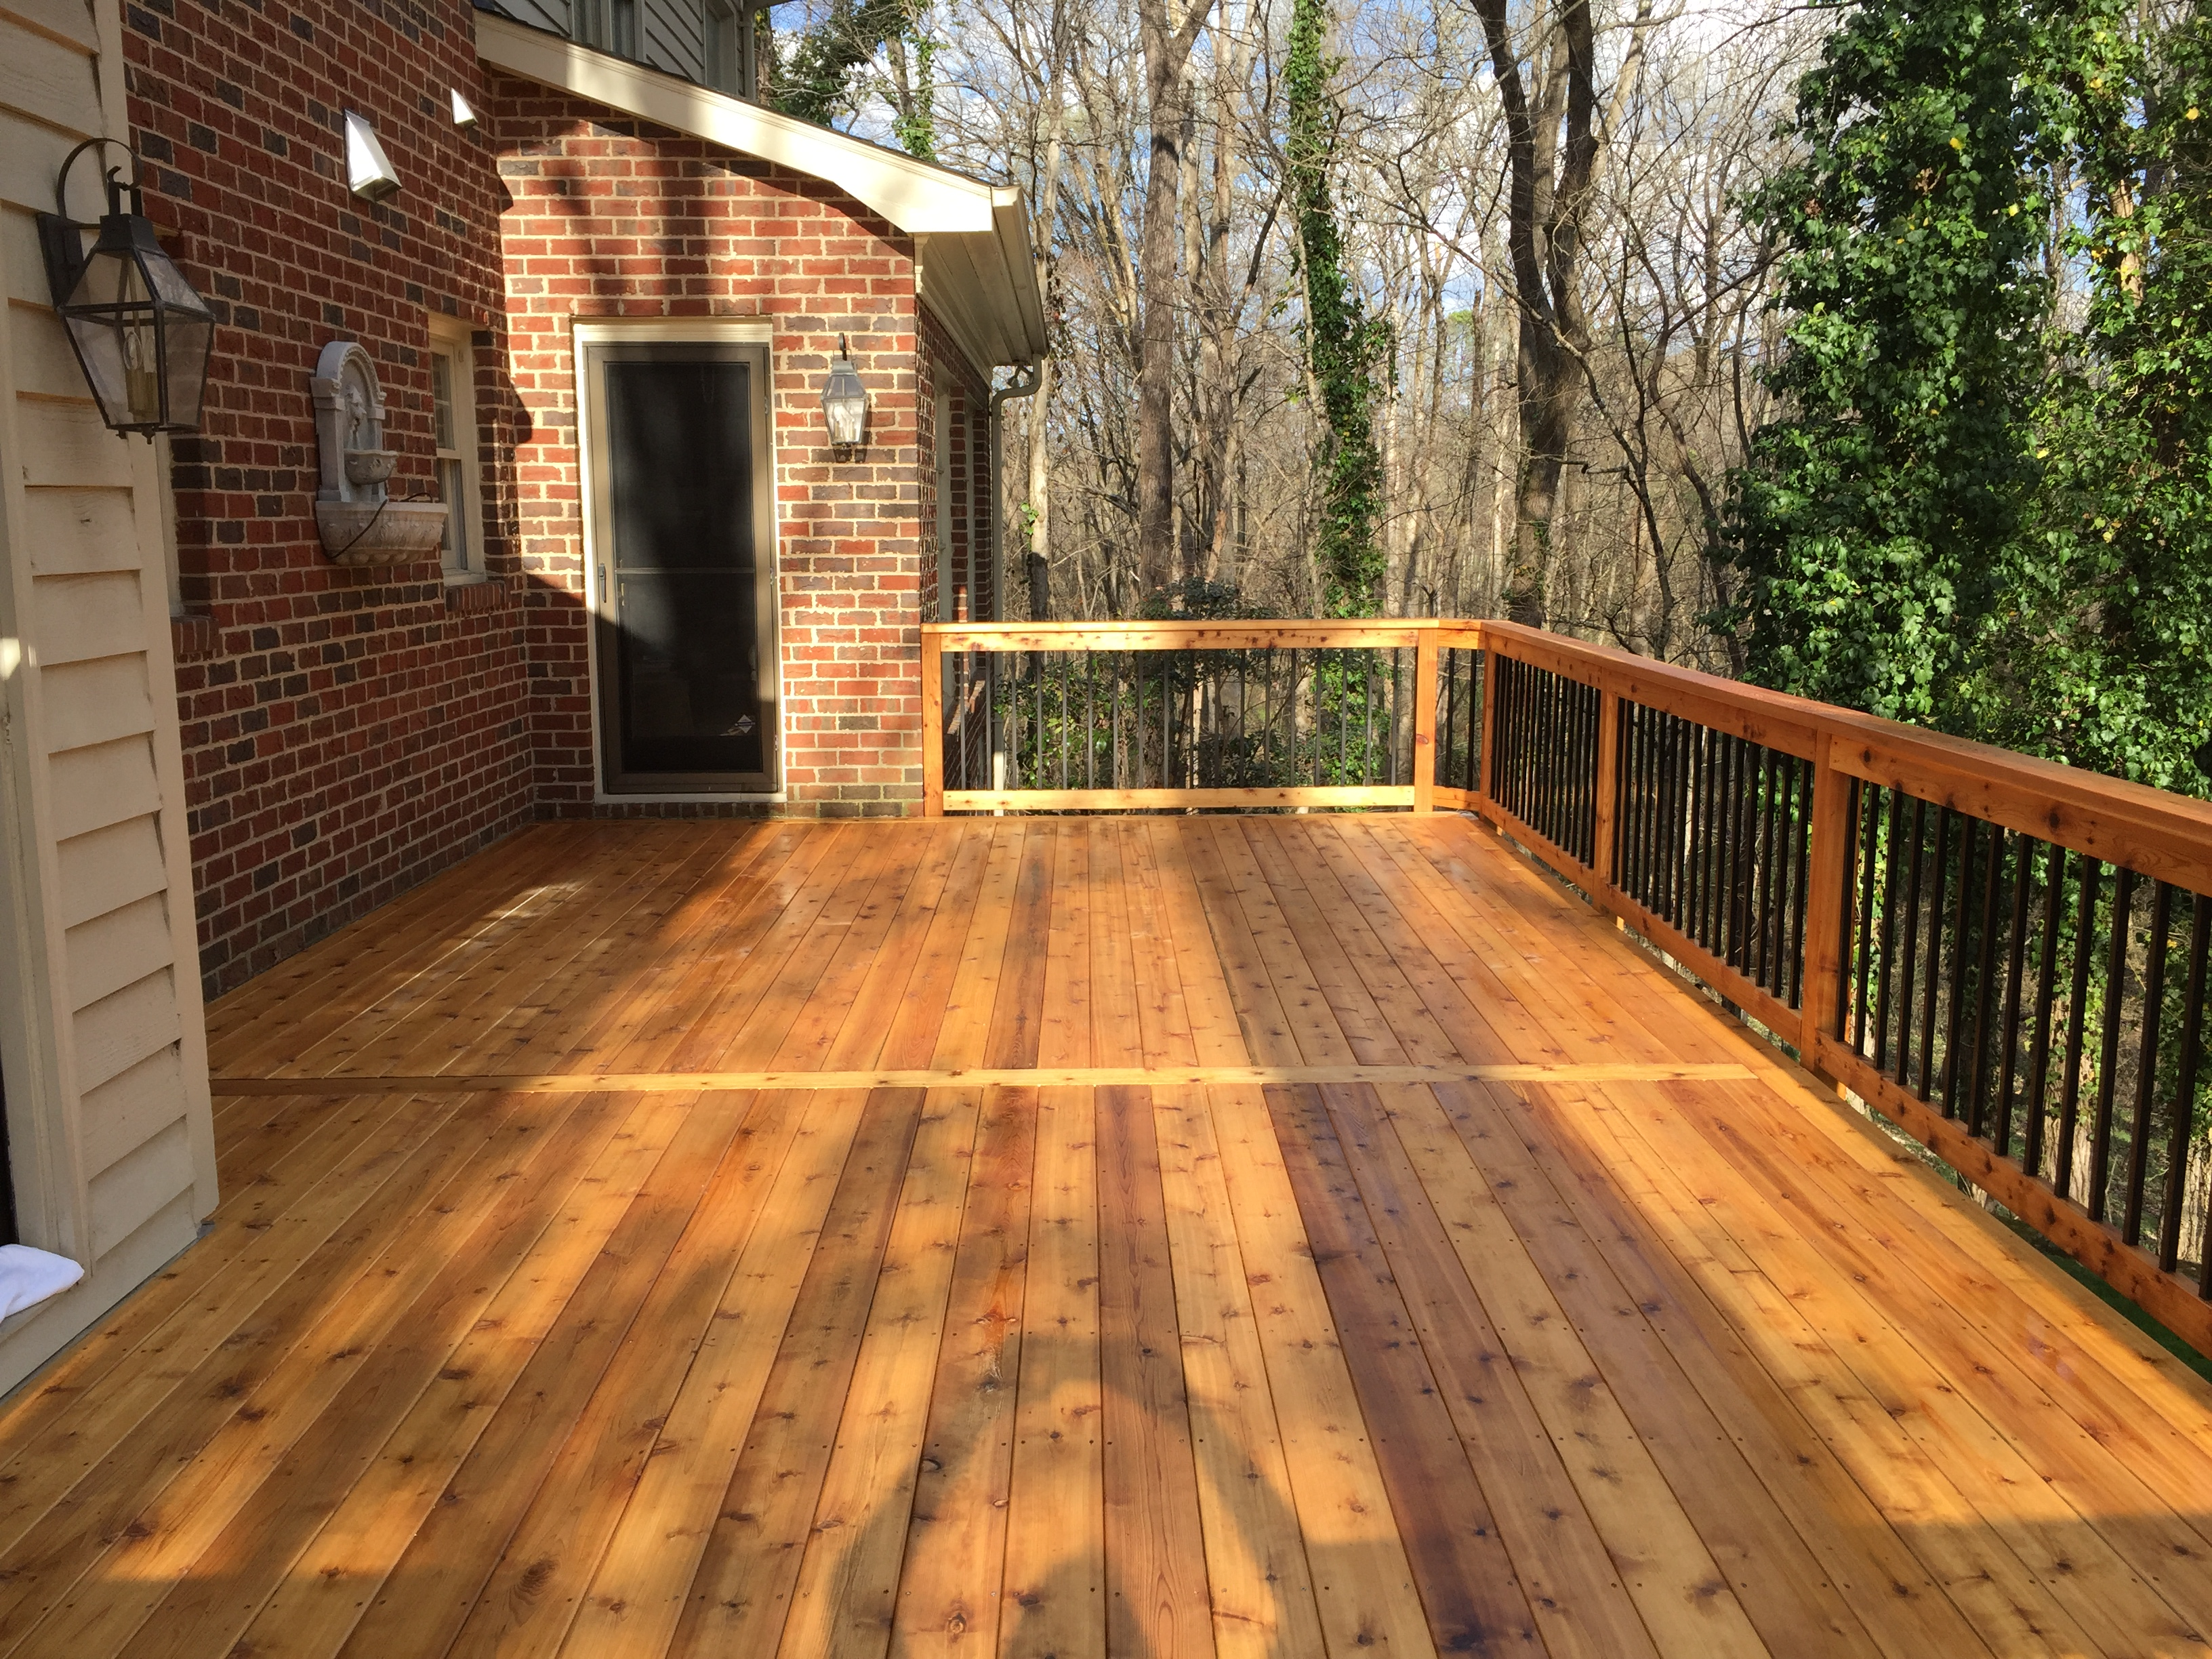 How to Apply Deck Stain